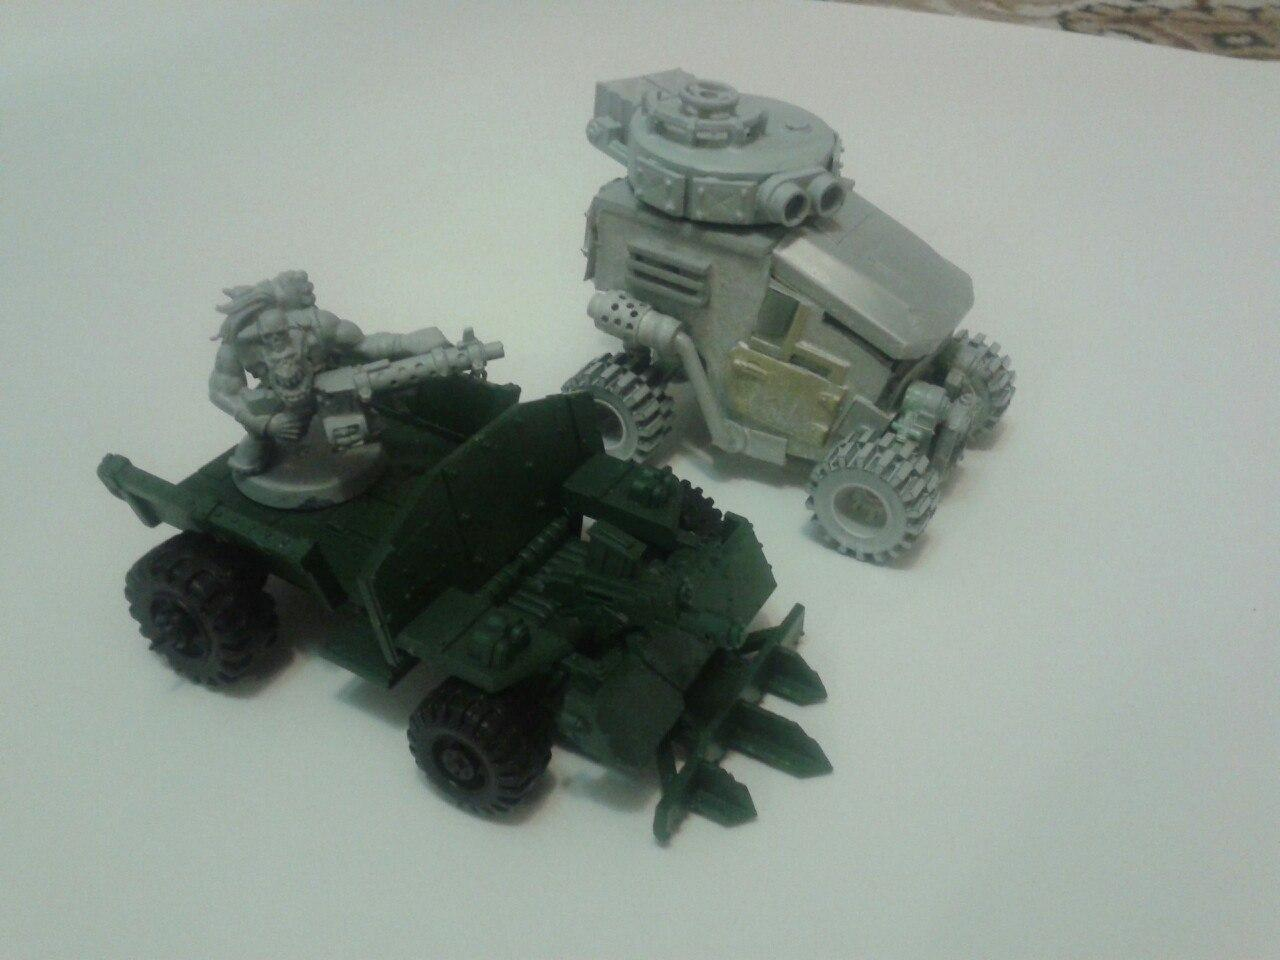 Buggy, Conversion, Orcs, Toy